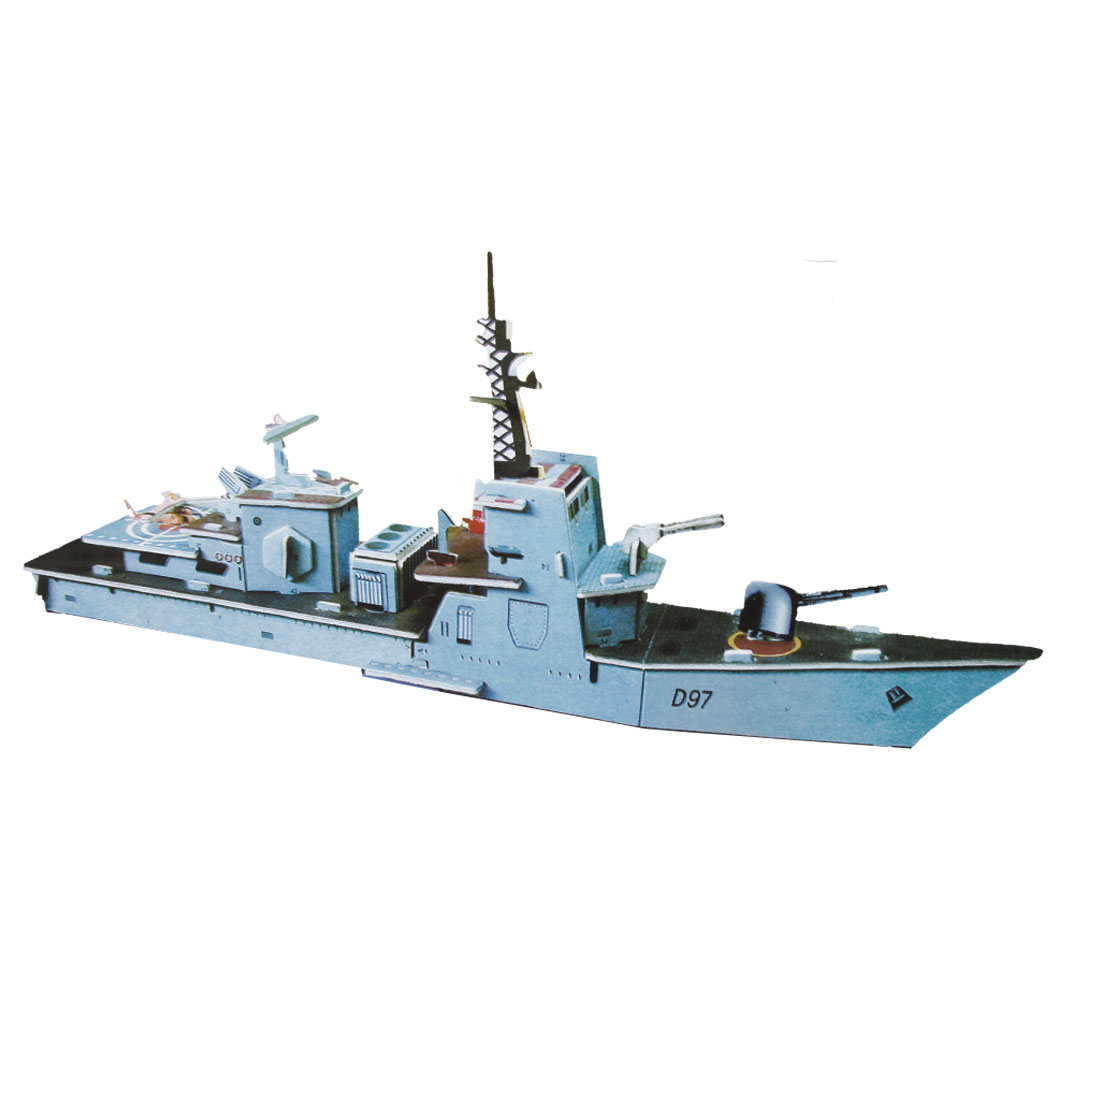 4 Sheets Noks Frigate 3D Model Puzzles Toy for Child